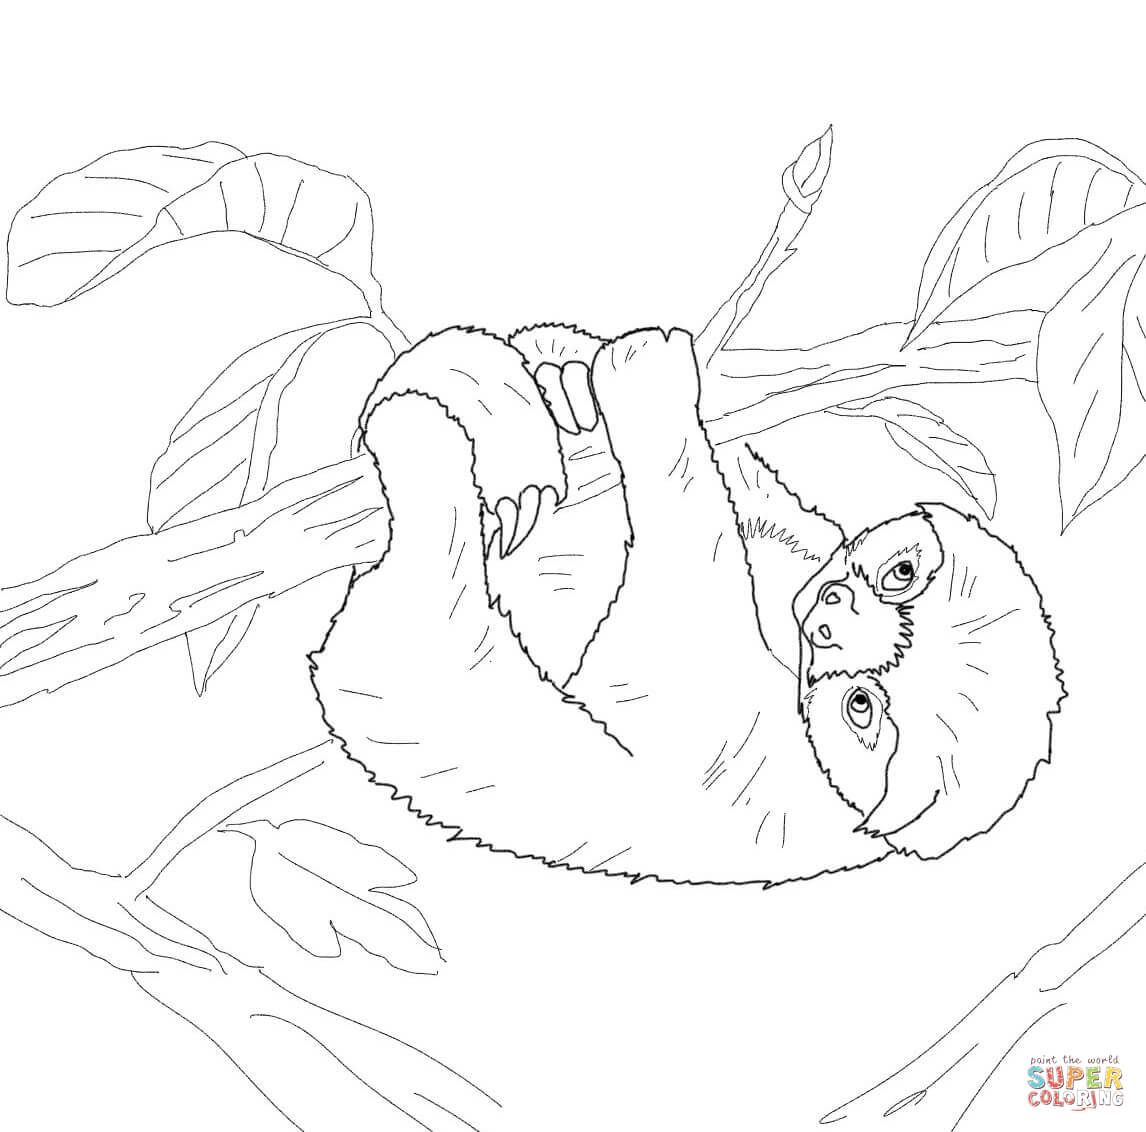 Baby Sloth Coloring Page Free Printable Coloring Pages Sloth Coloring Pages Animal Coloring Pages Coloring Pages